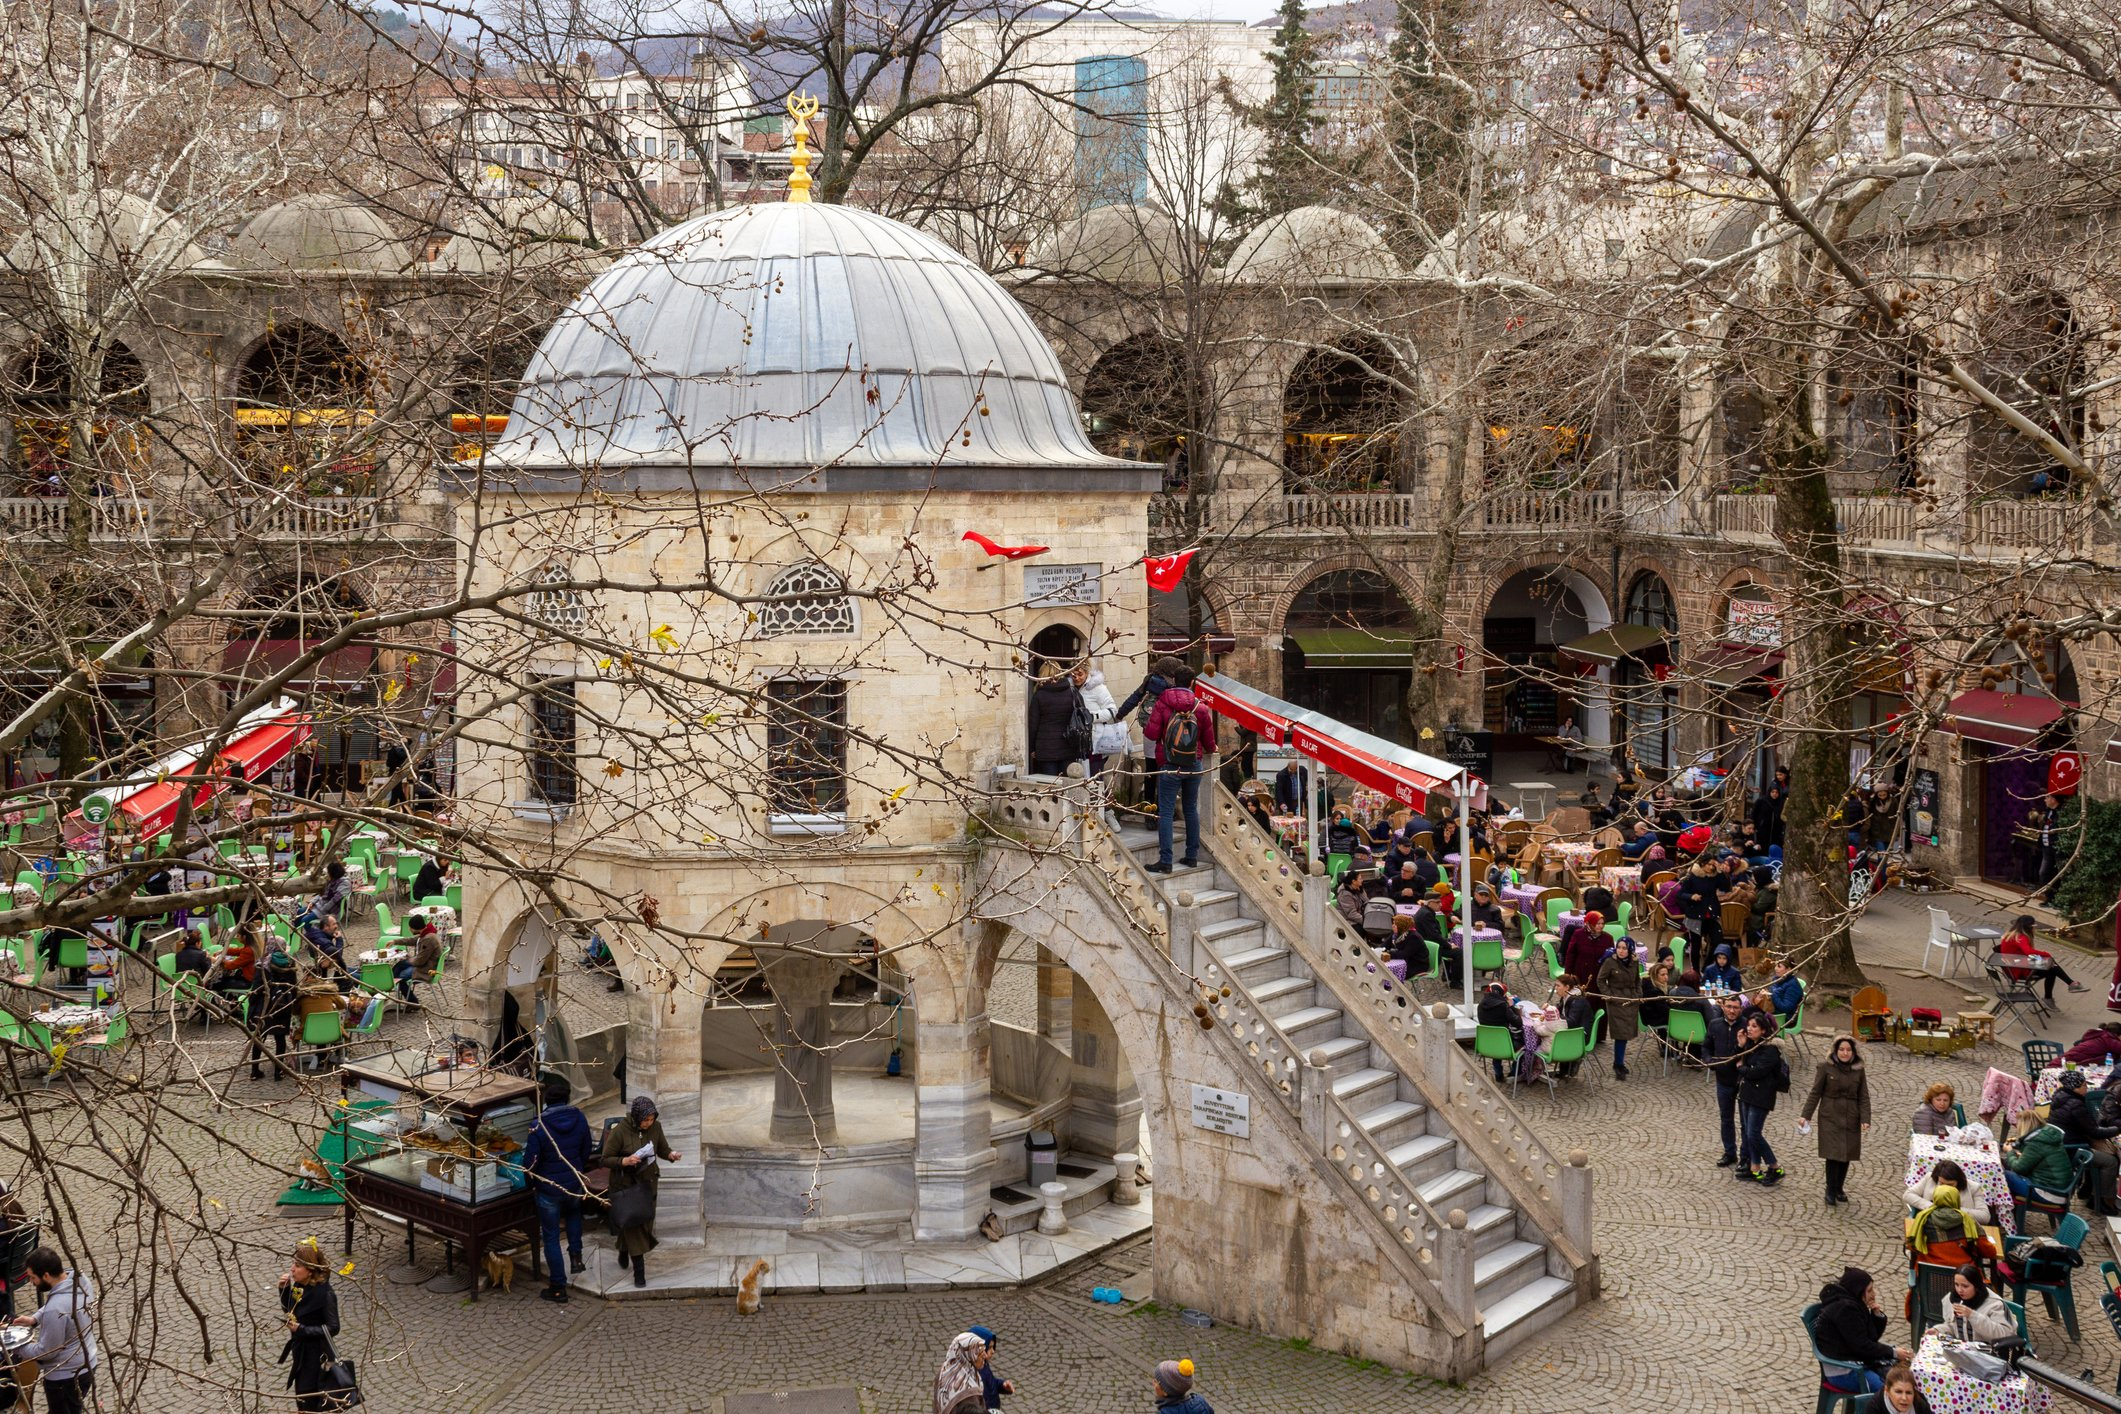 Photo shows Koza Han, a historic caravanserai and touristic silk bazaar in the old city center in Bursa, Jan. 29, 2020. (Türker Minaz / iStock Photo)